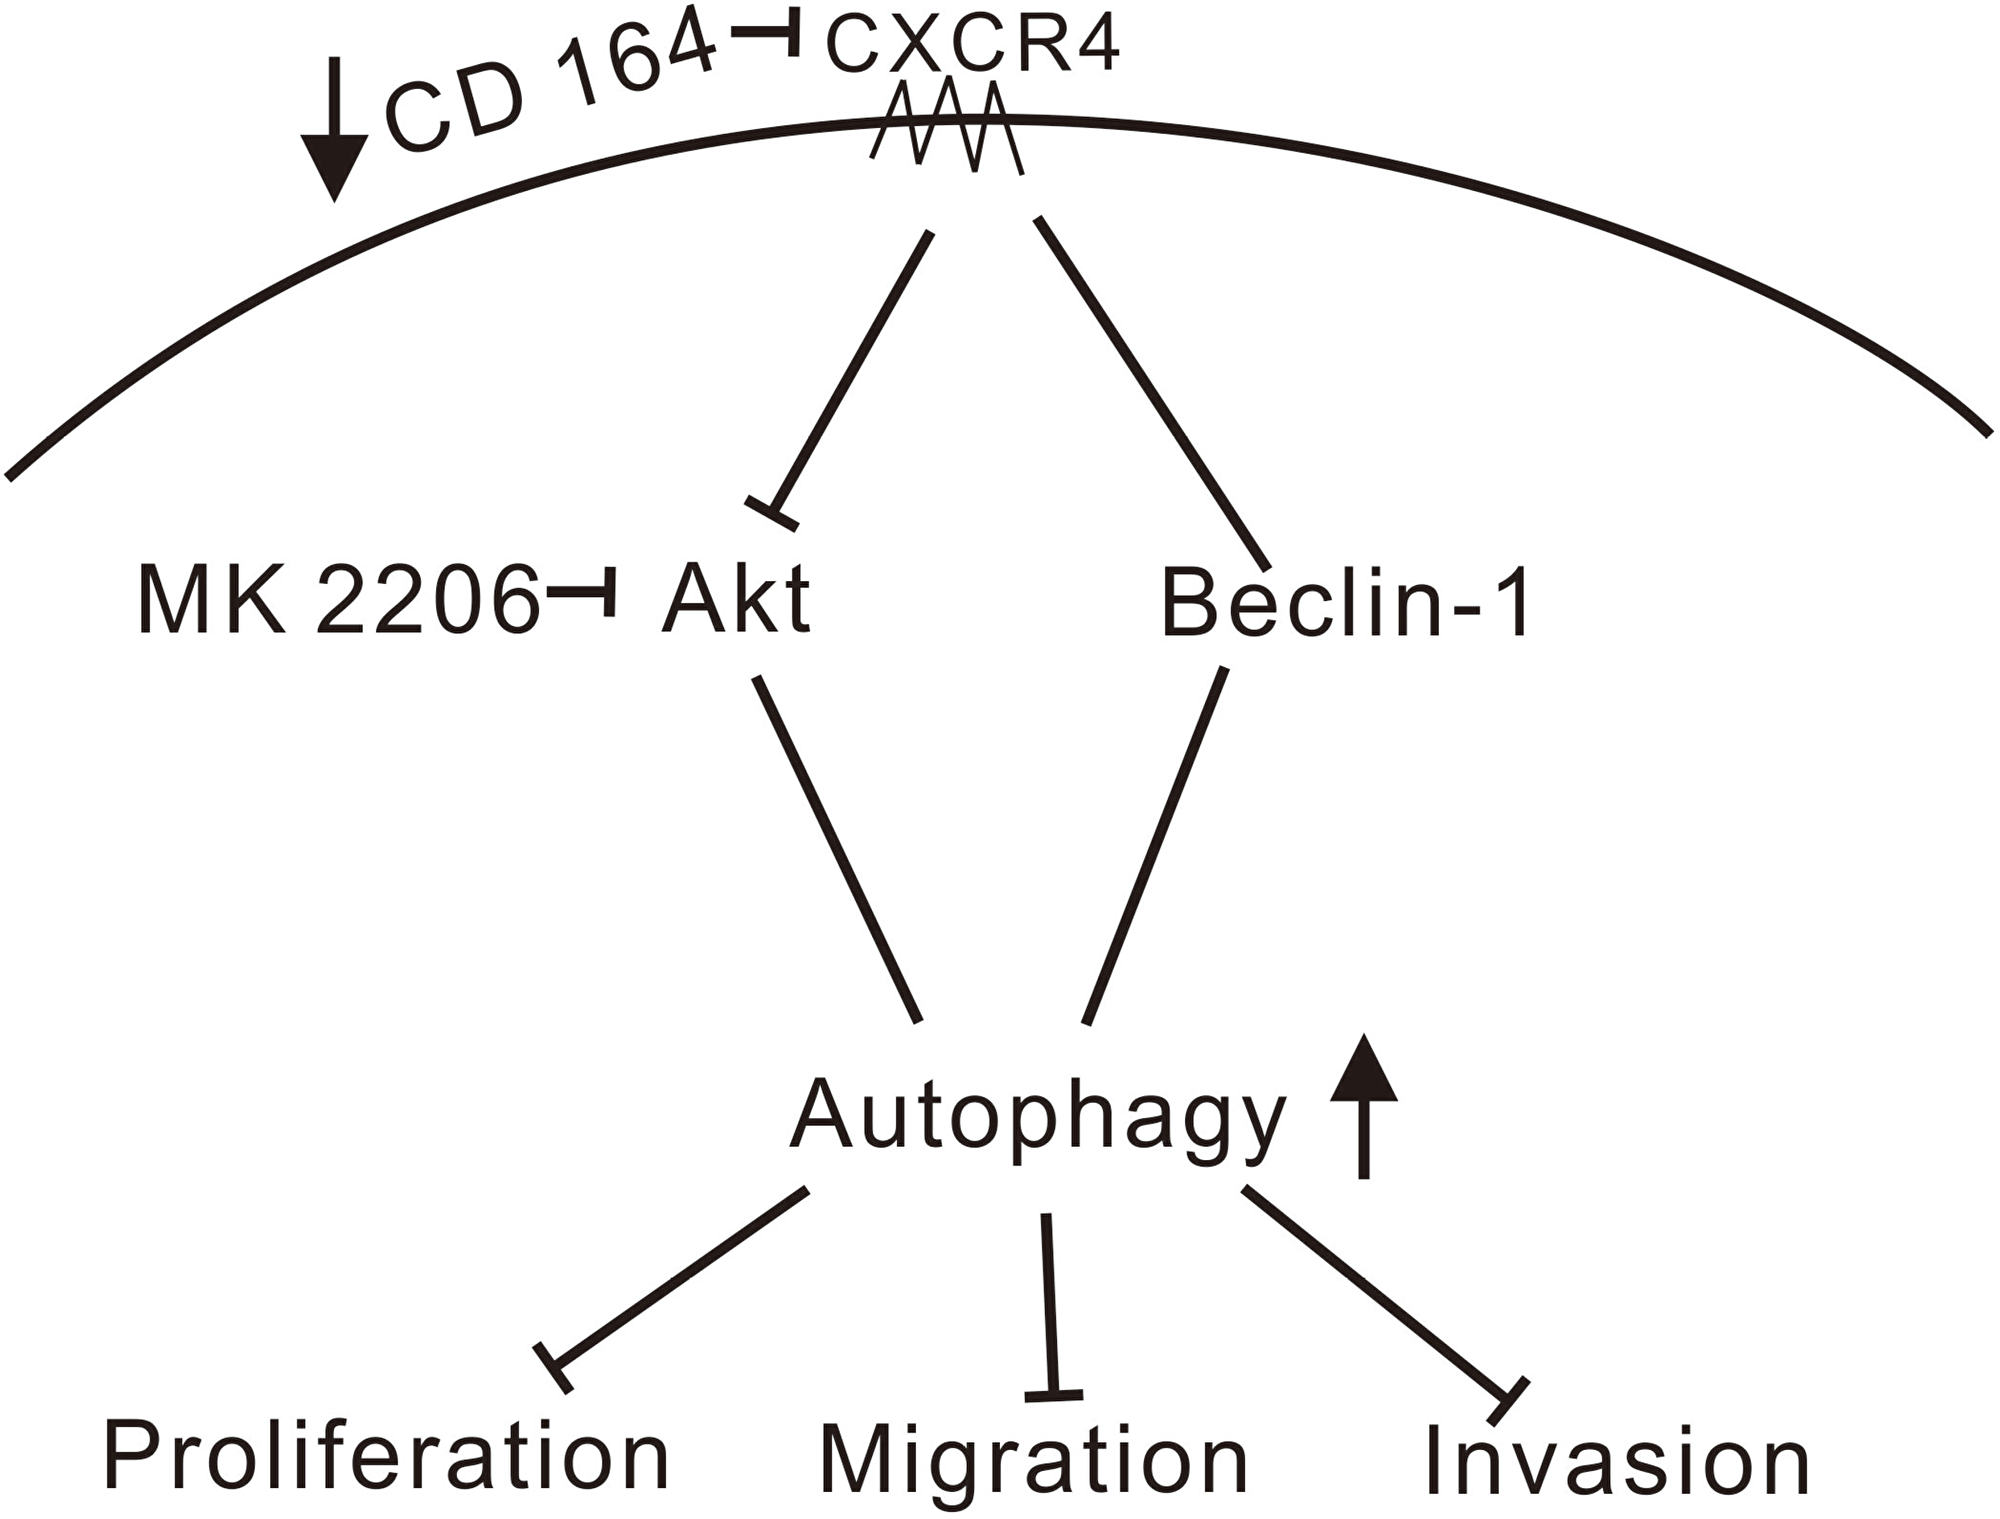 Schematic model of signaling pathways affected by CD164 in GBM.